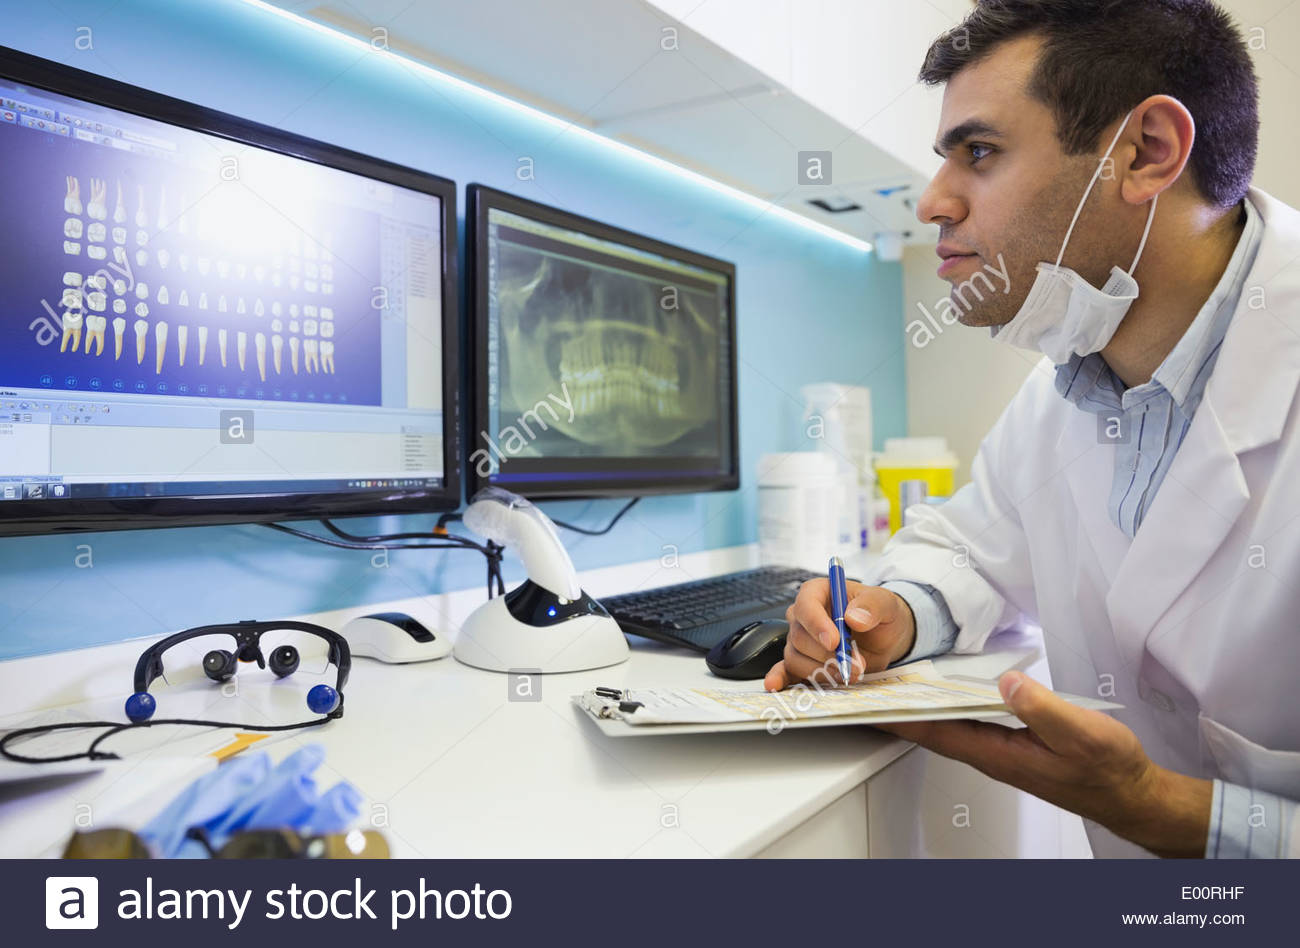 Dentist with clipboard examining tooth x-rays - Stock Image